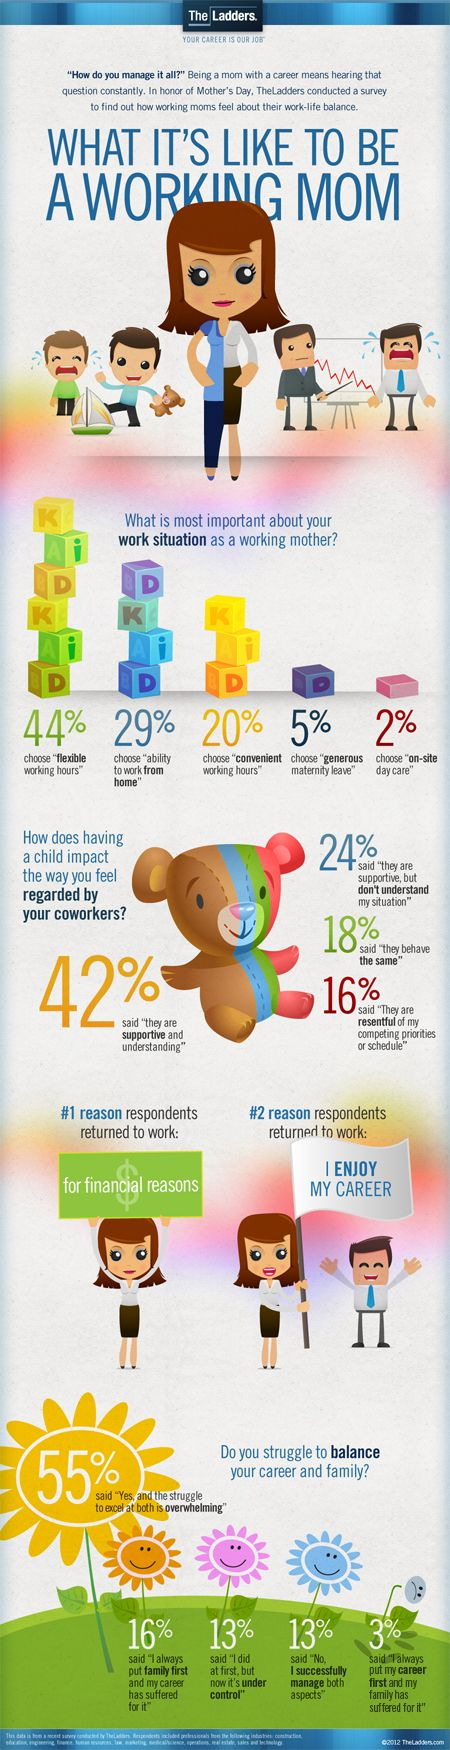 What It's Like to be a #WorkingMom #infographic